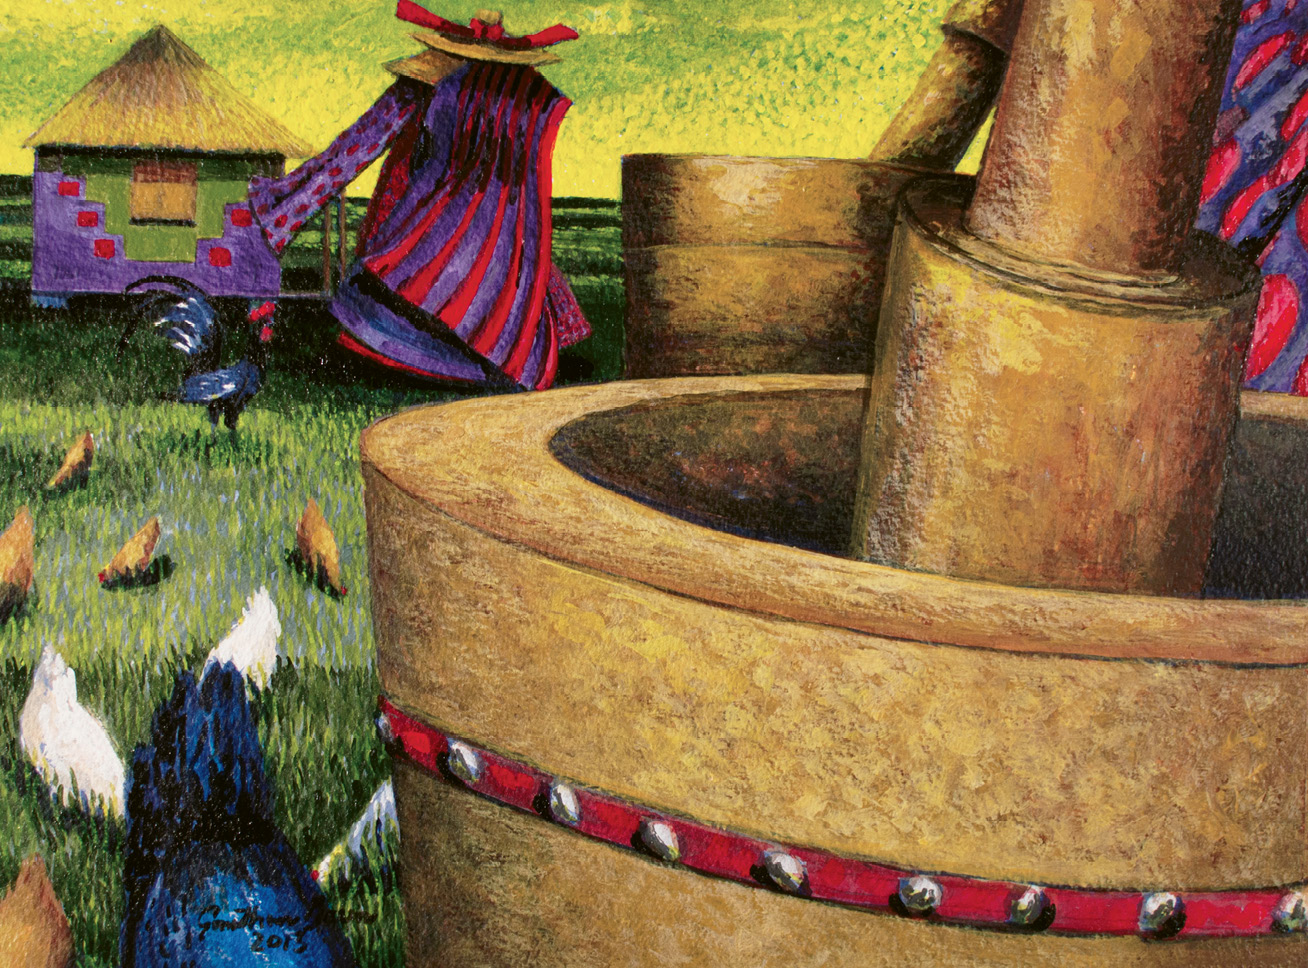 Pestle and Mortar (acrylic on watercolor, 11 X 14 1/2 inches, 2012)